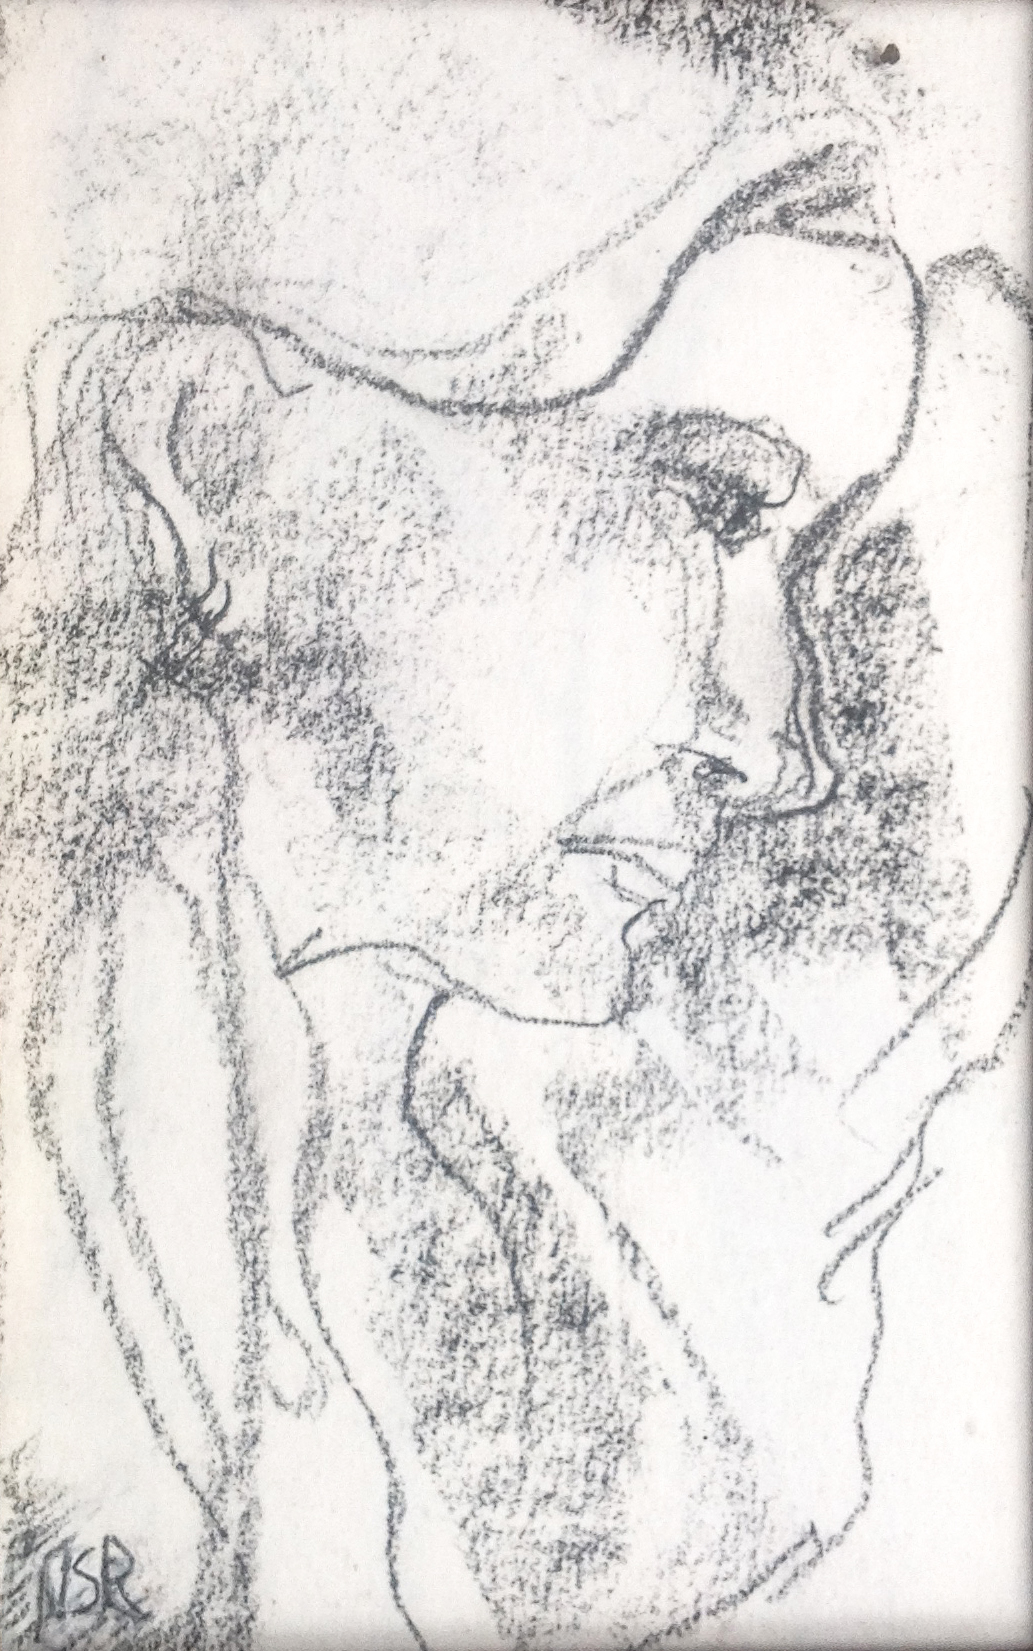 """Face Profile I - 3.5"""" x 5.5"""" - Collection of Bill Reybold"""